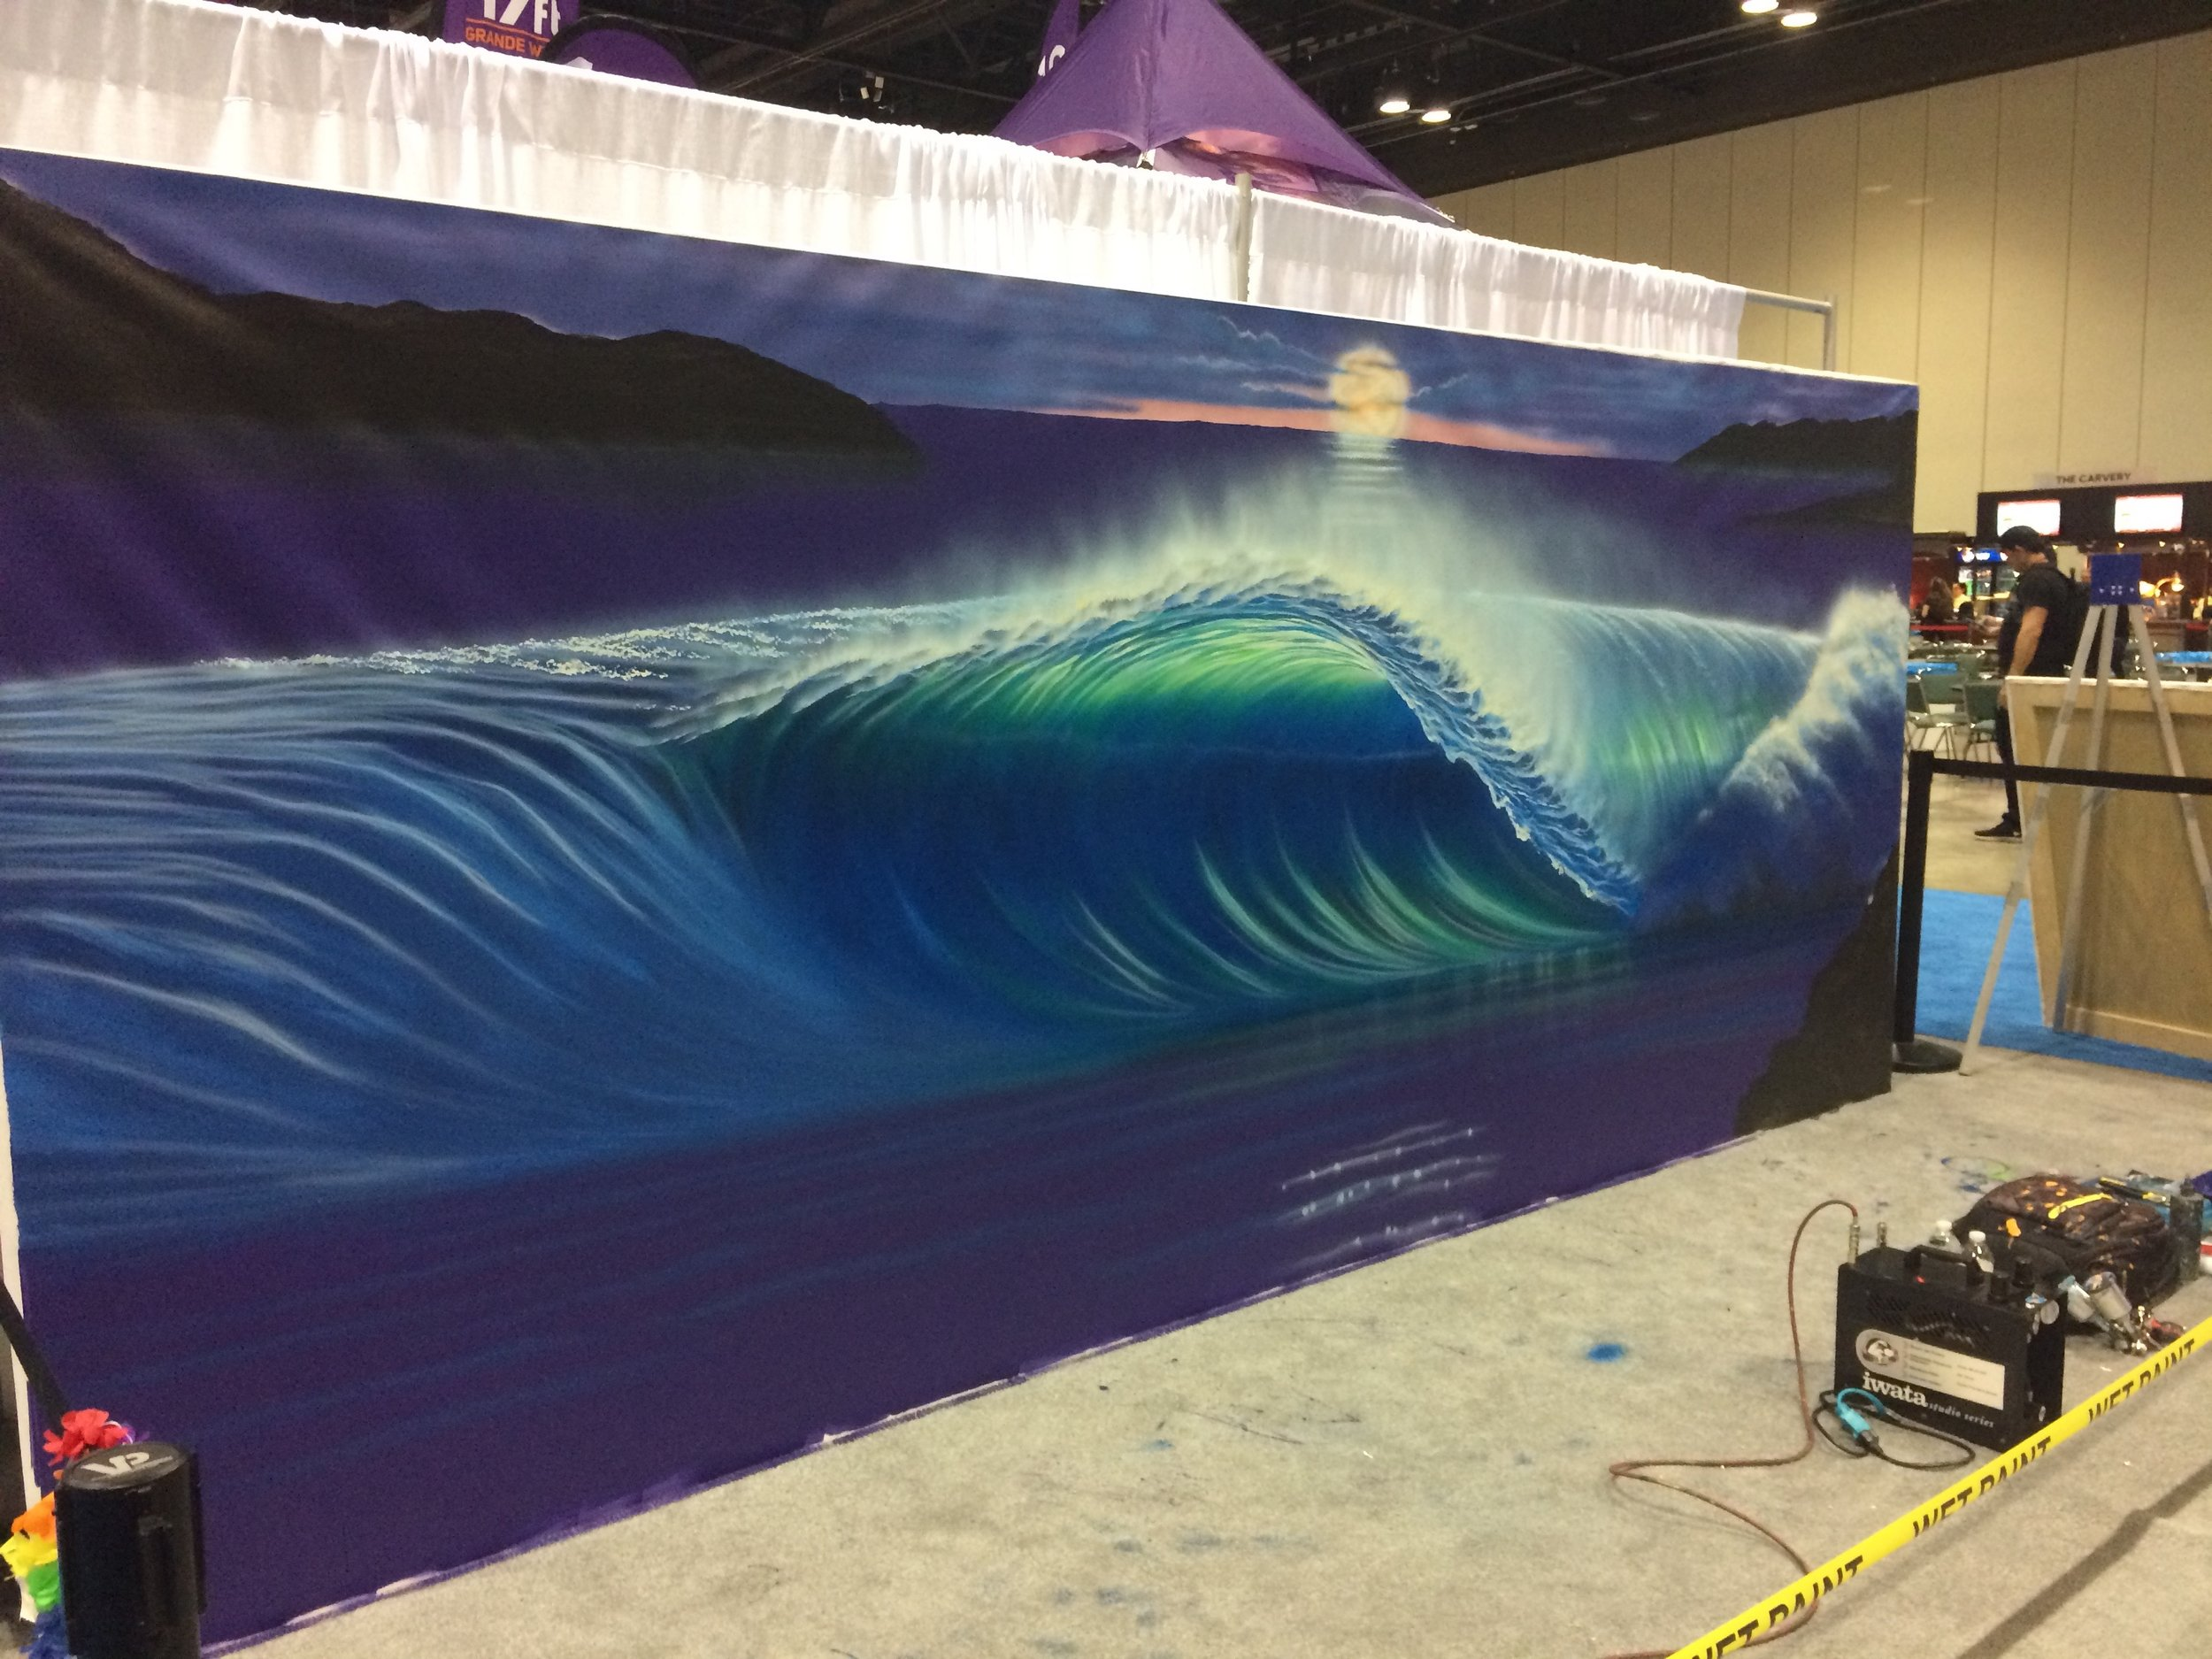 Surf art in progress